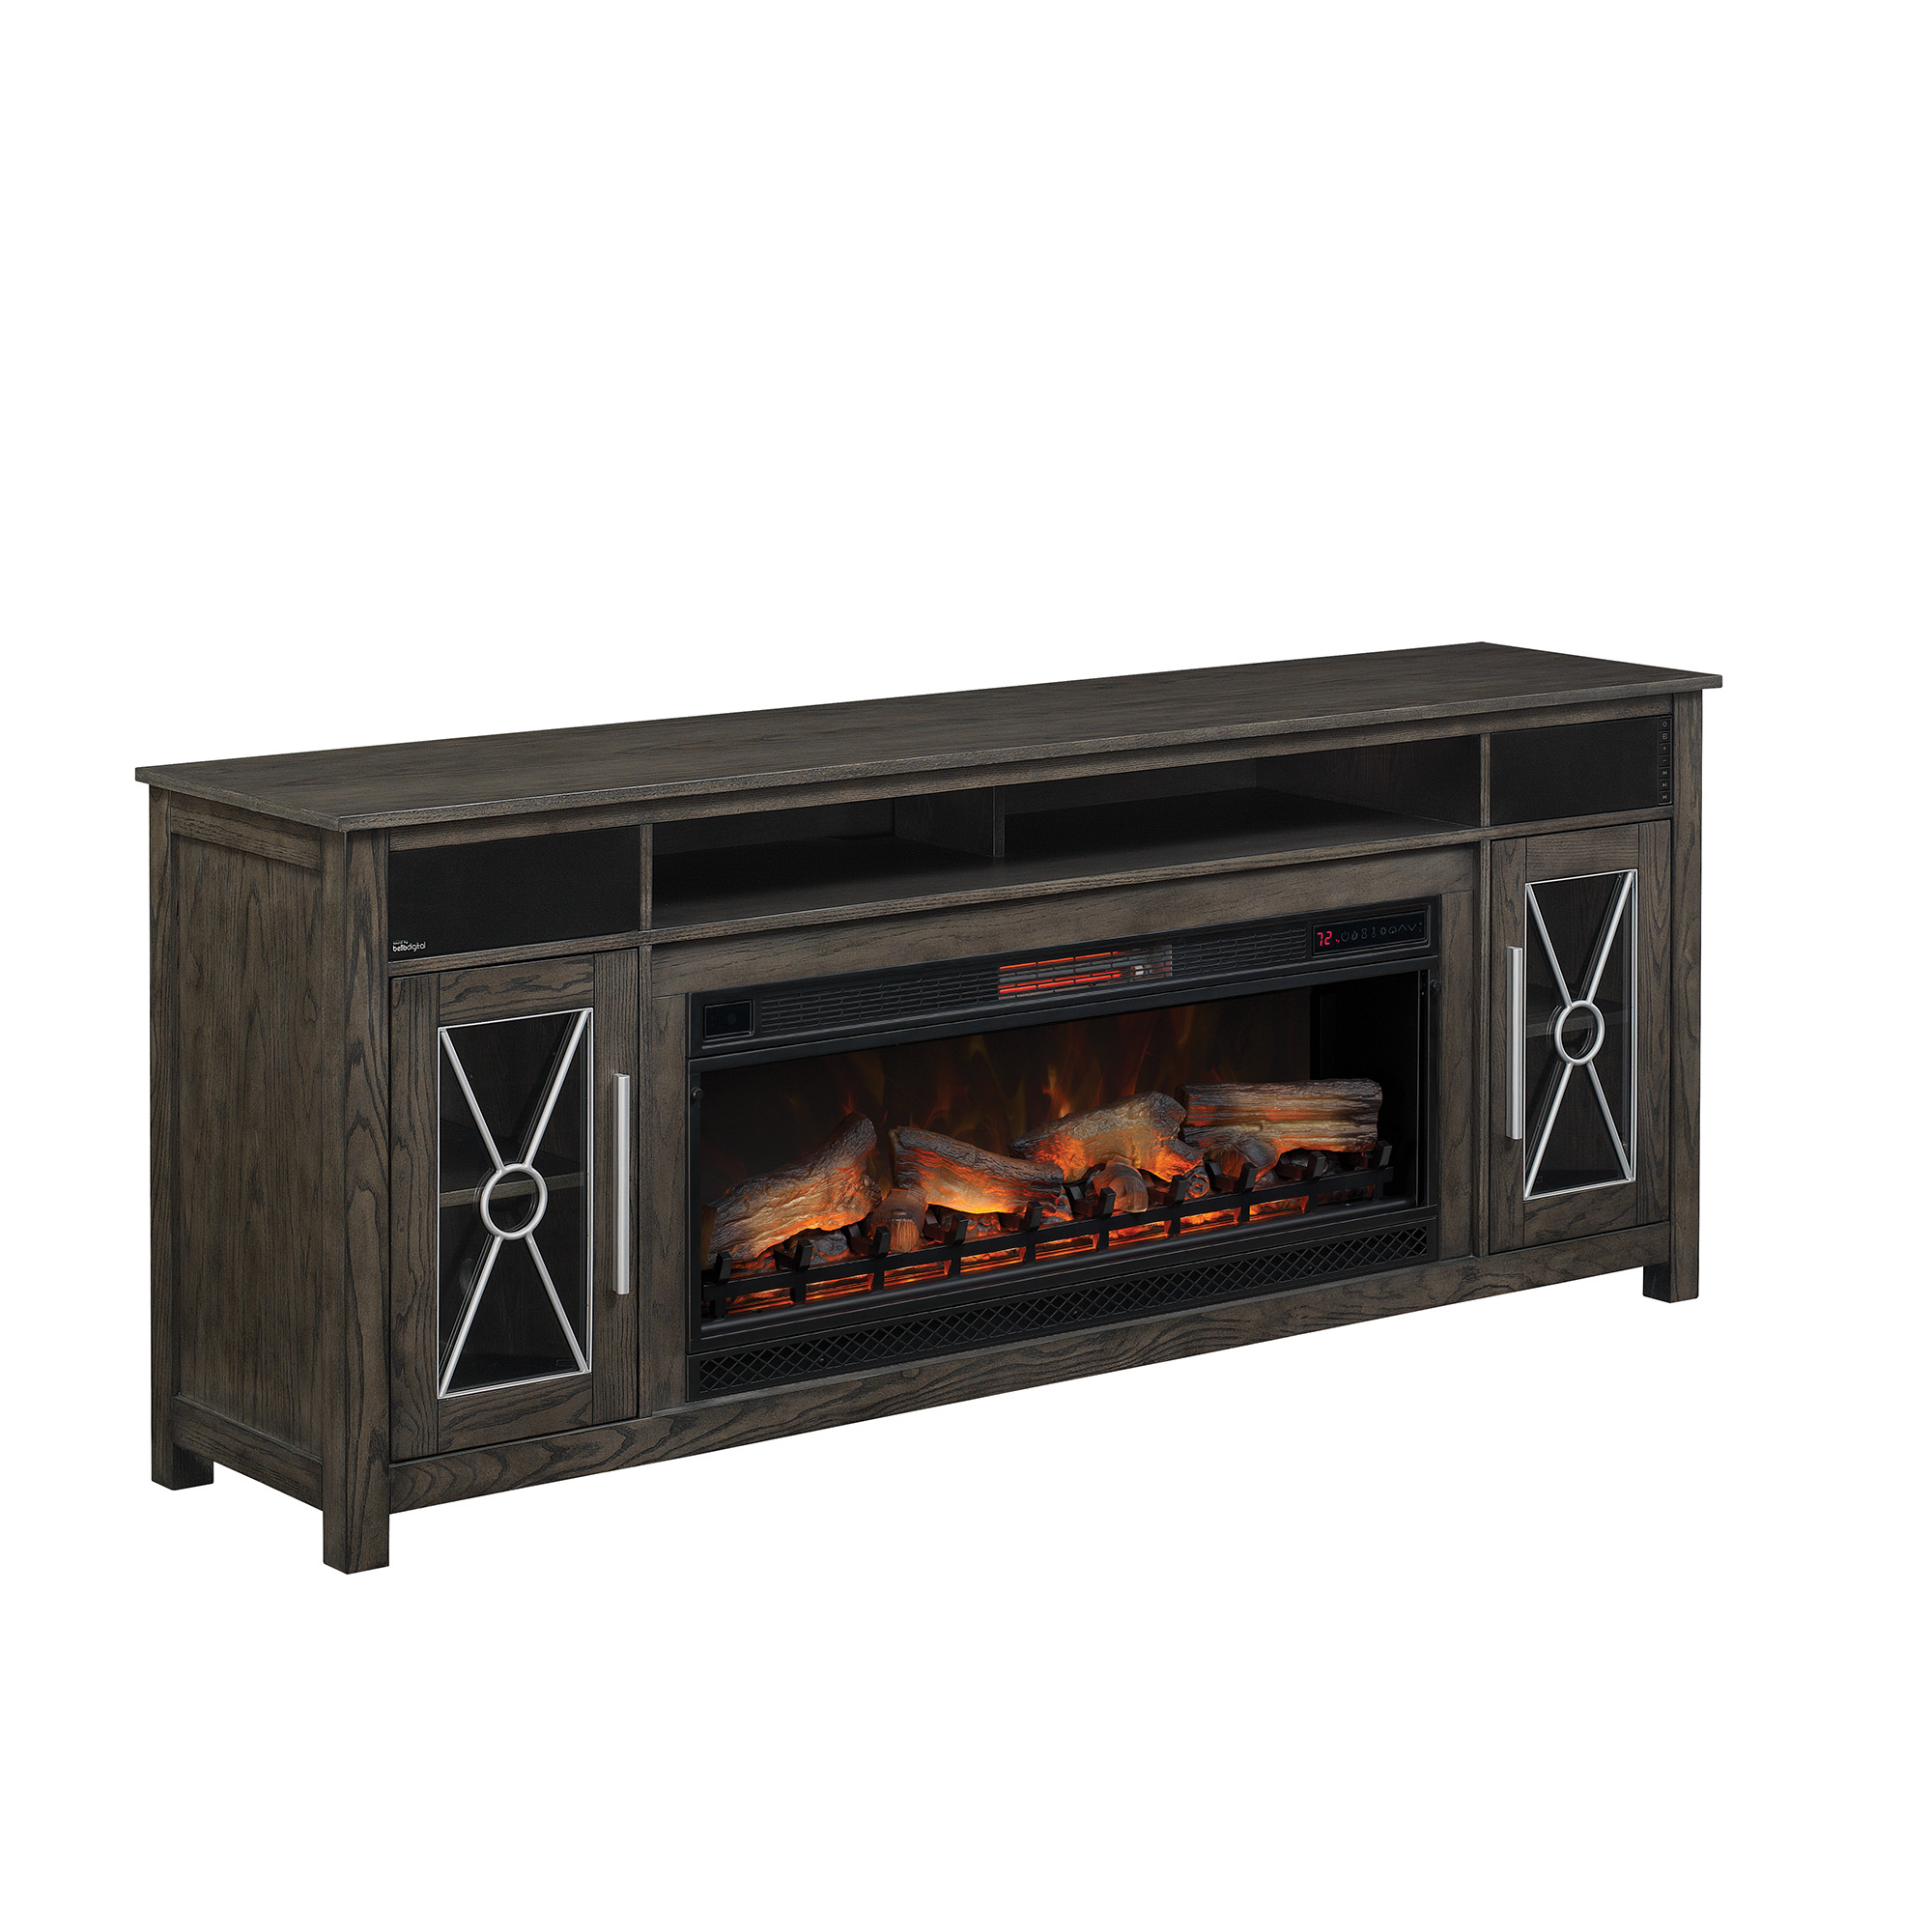 free changing fireplace northwest color black overstock garden product electric home today led with digital shipping remote